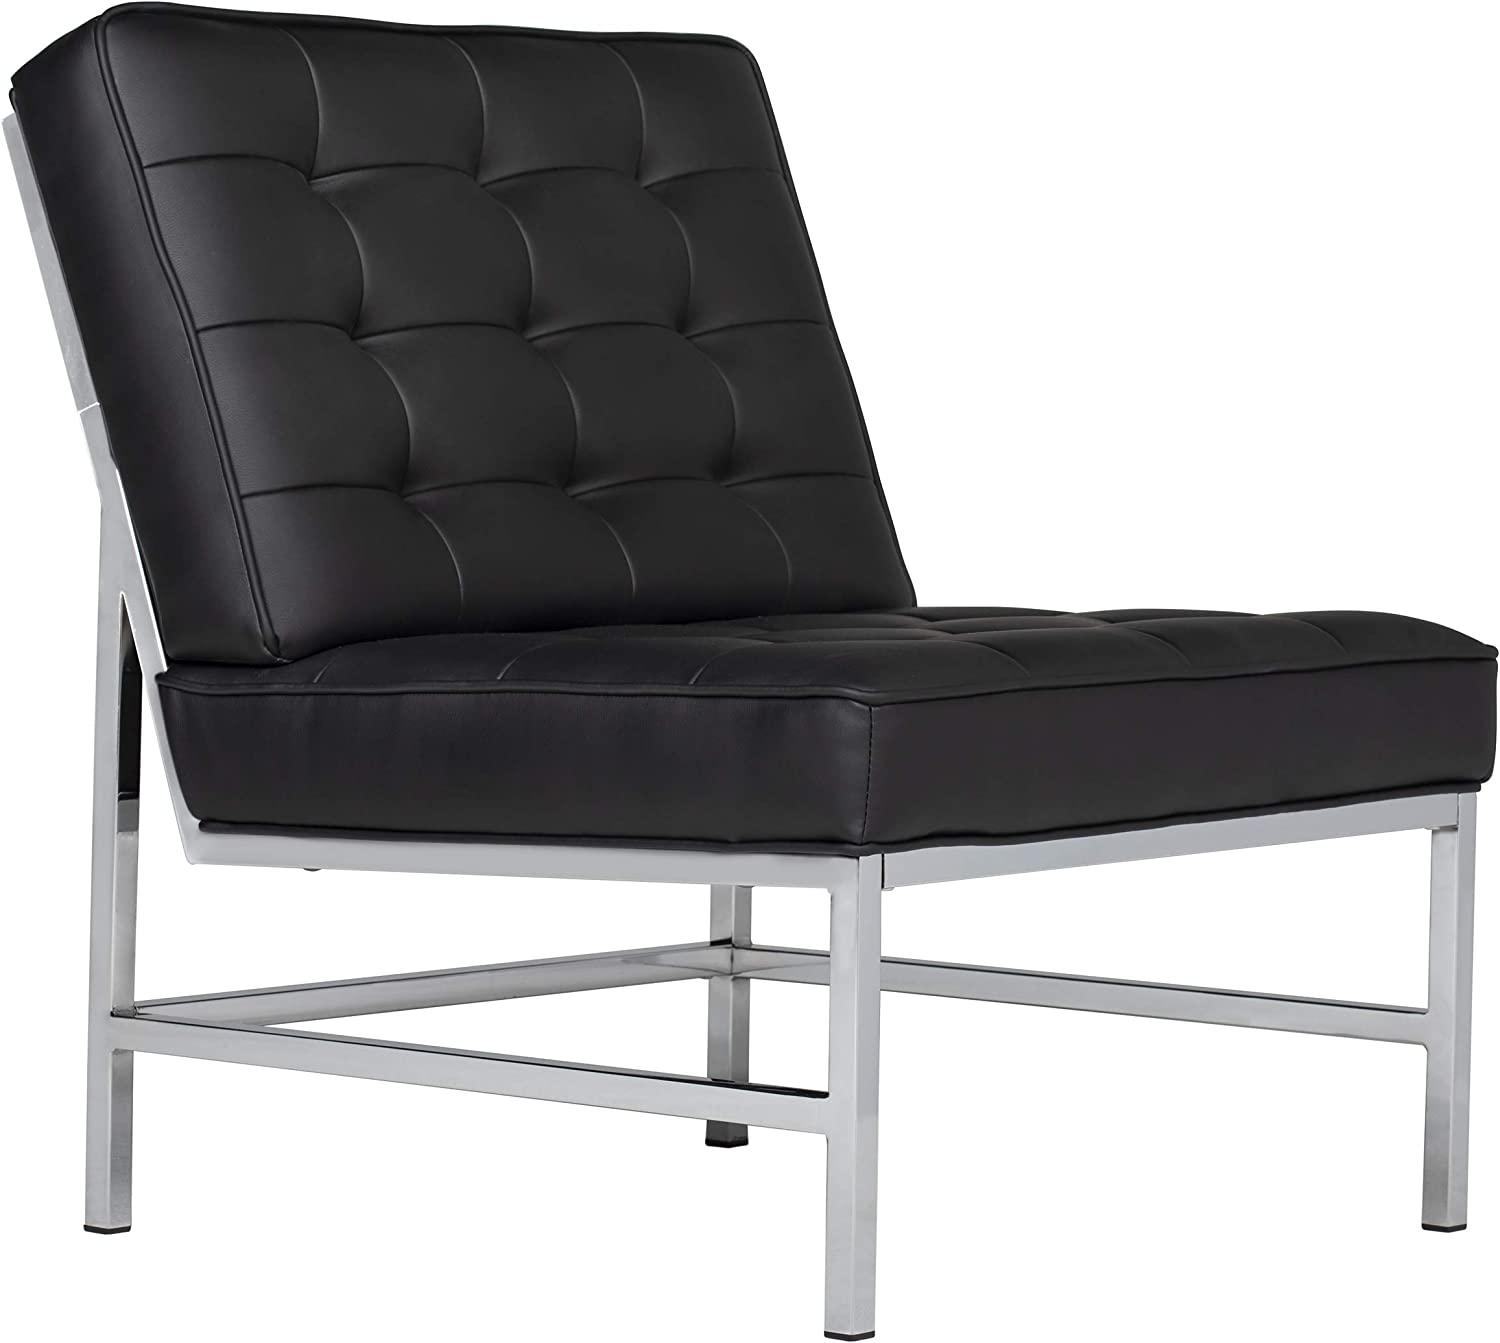 Studio Designs Home Ashlar Slipper, Accent Chair in Black Bonded Leather and Chrome Metal